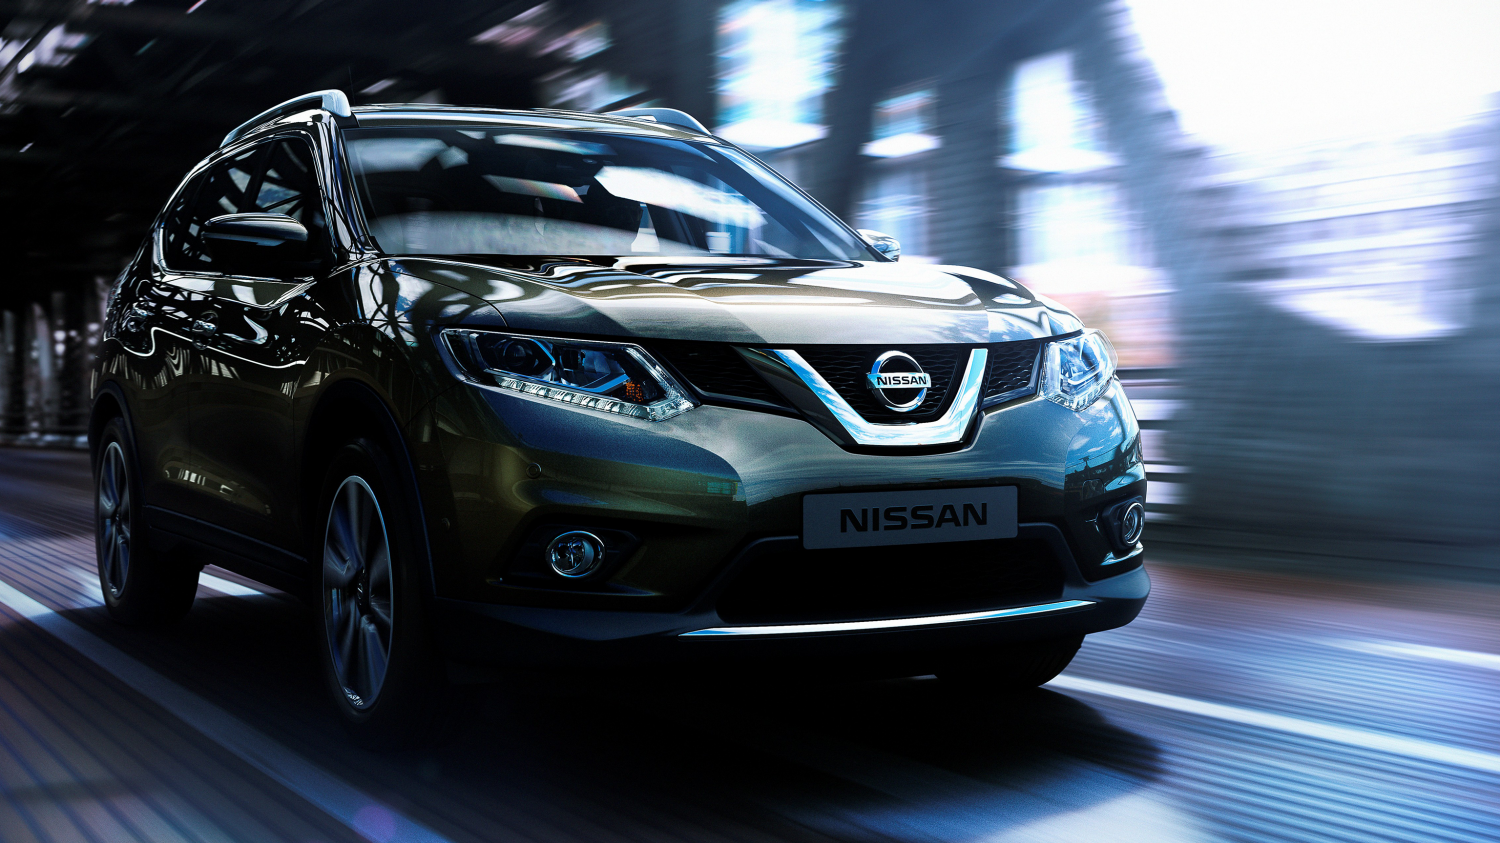 Nissan X-Trail - Imagine frontală 3/4